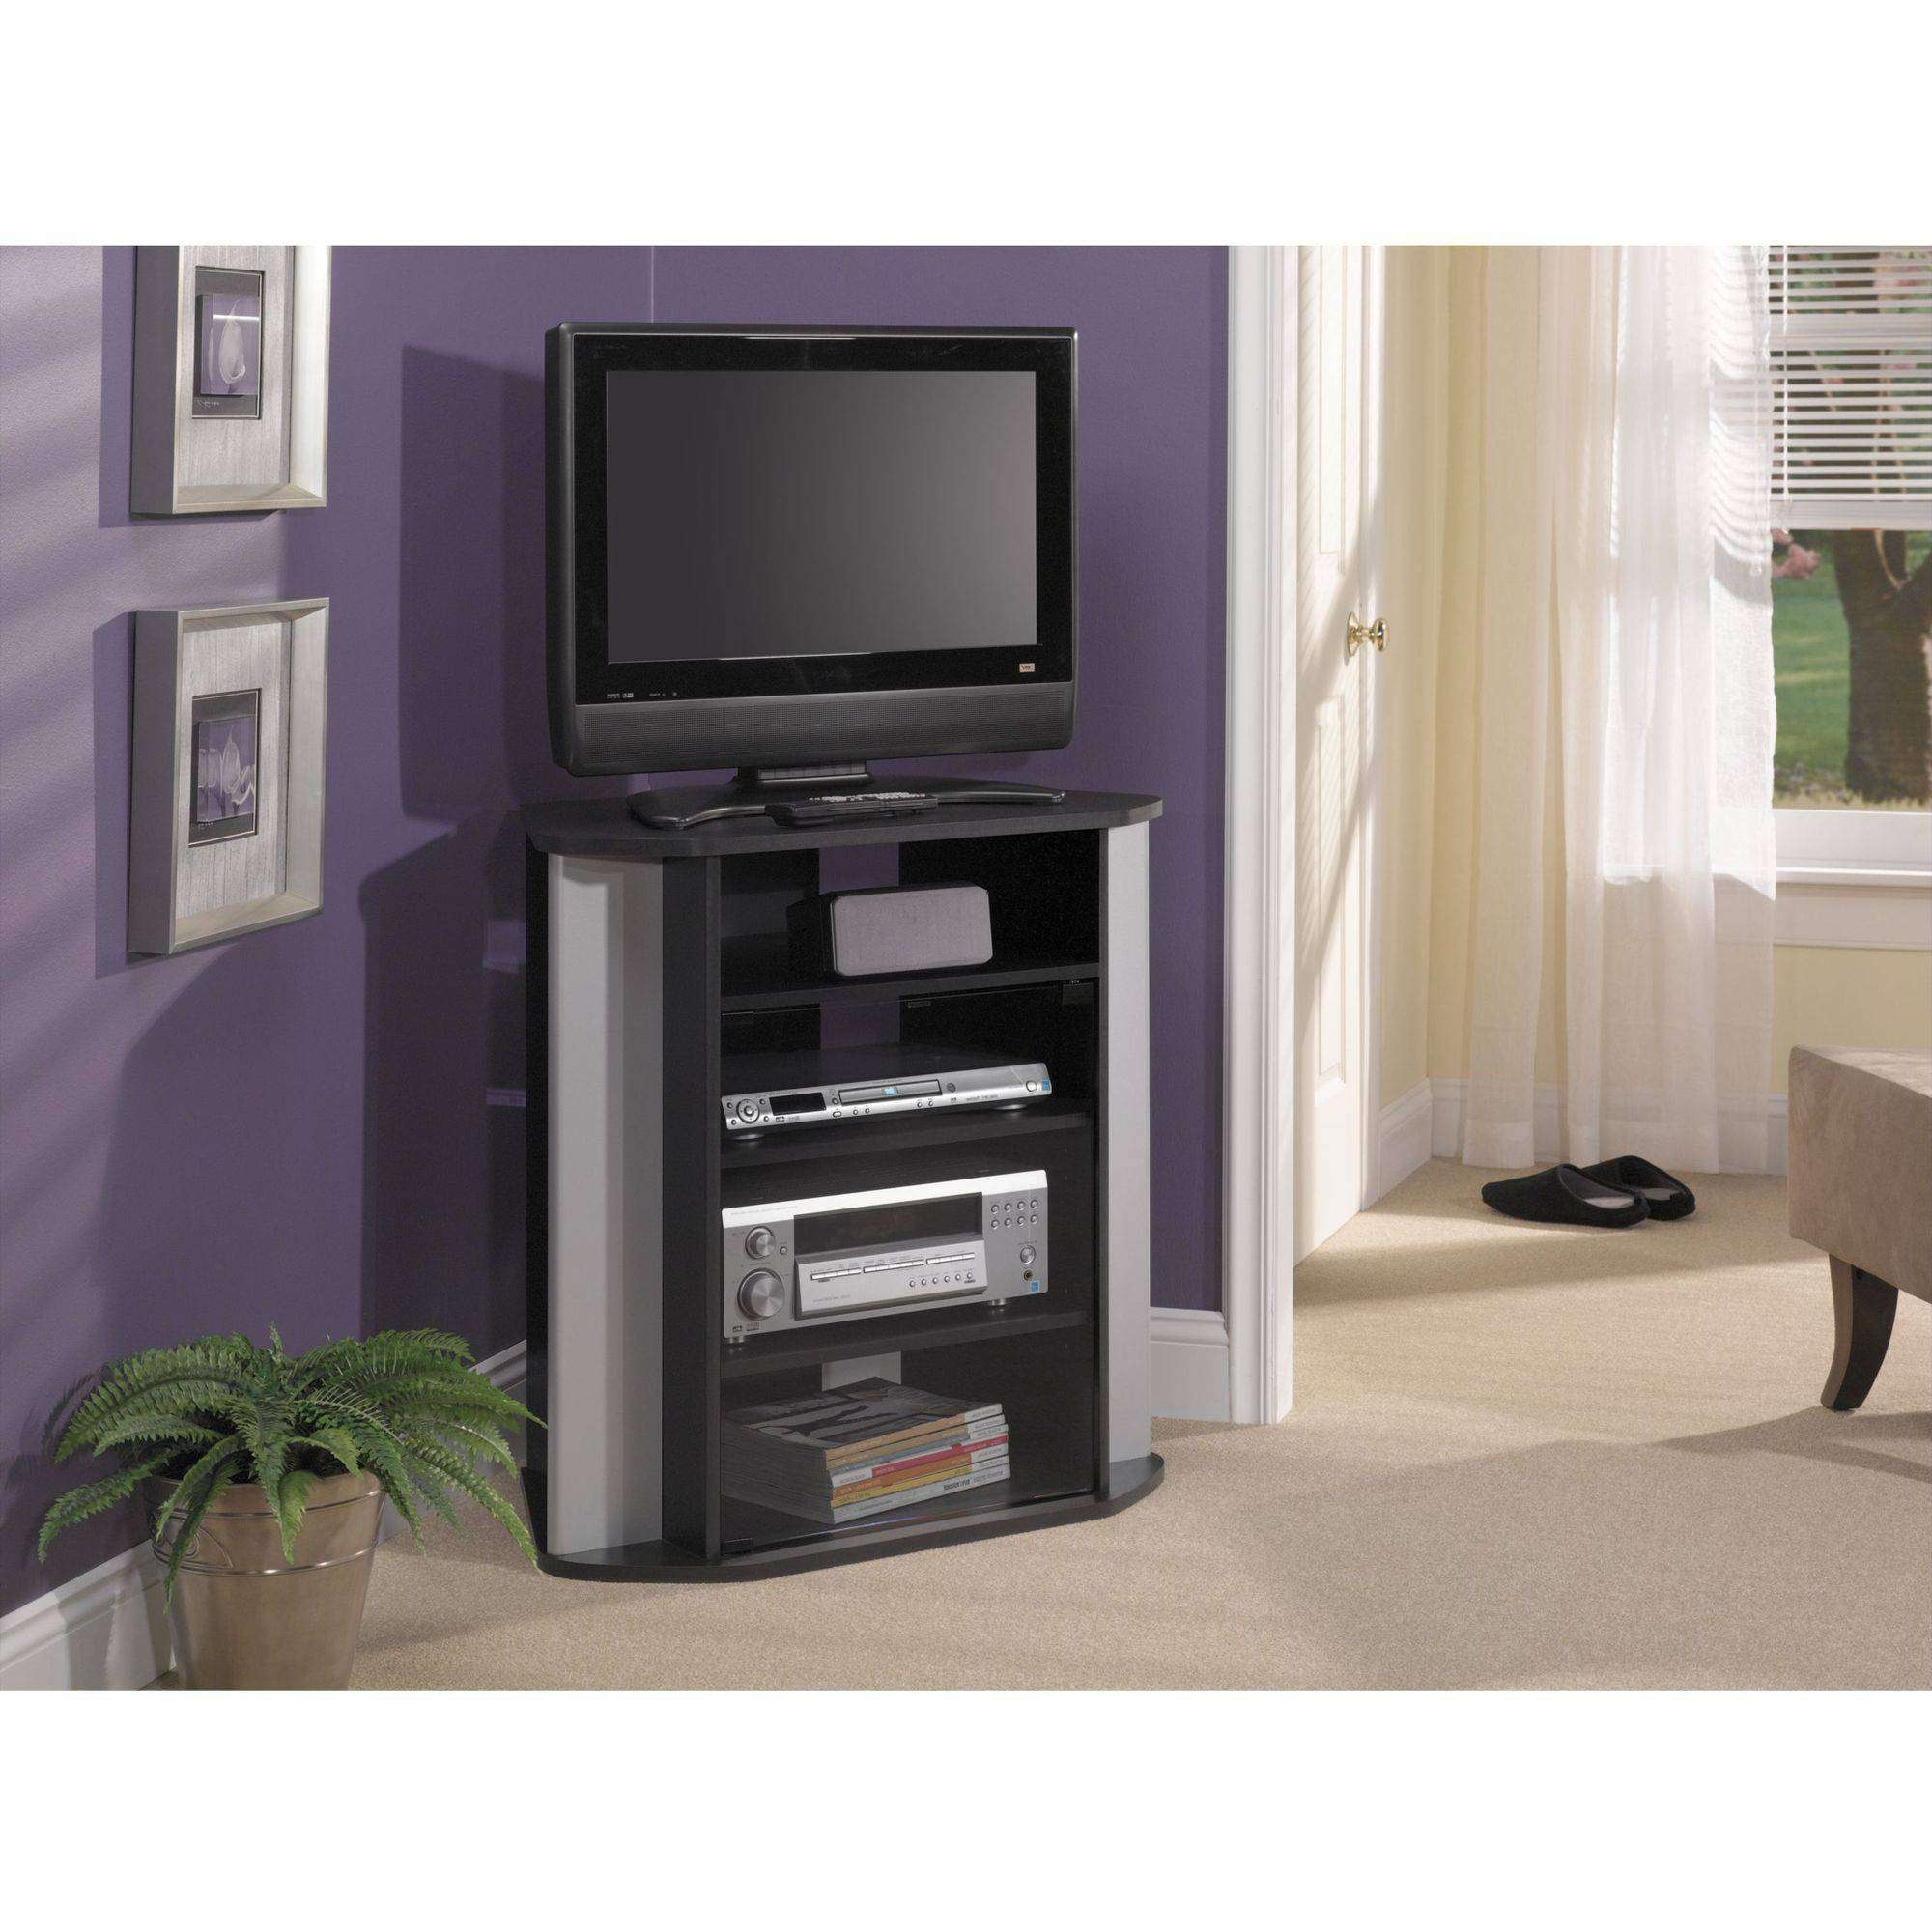 Elegant Corner Tv Stands For Flat Screen Tvs 72 For Your Interior Regarding Flat Screen Tv Stands Corner Units (View 10 of 20)